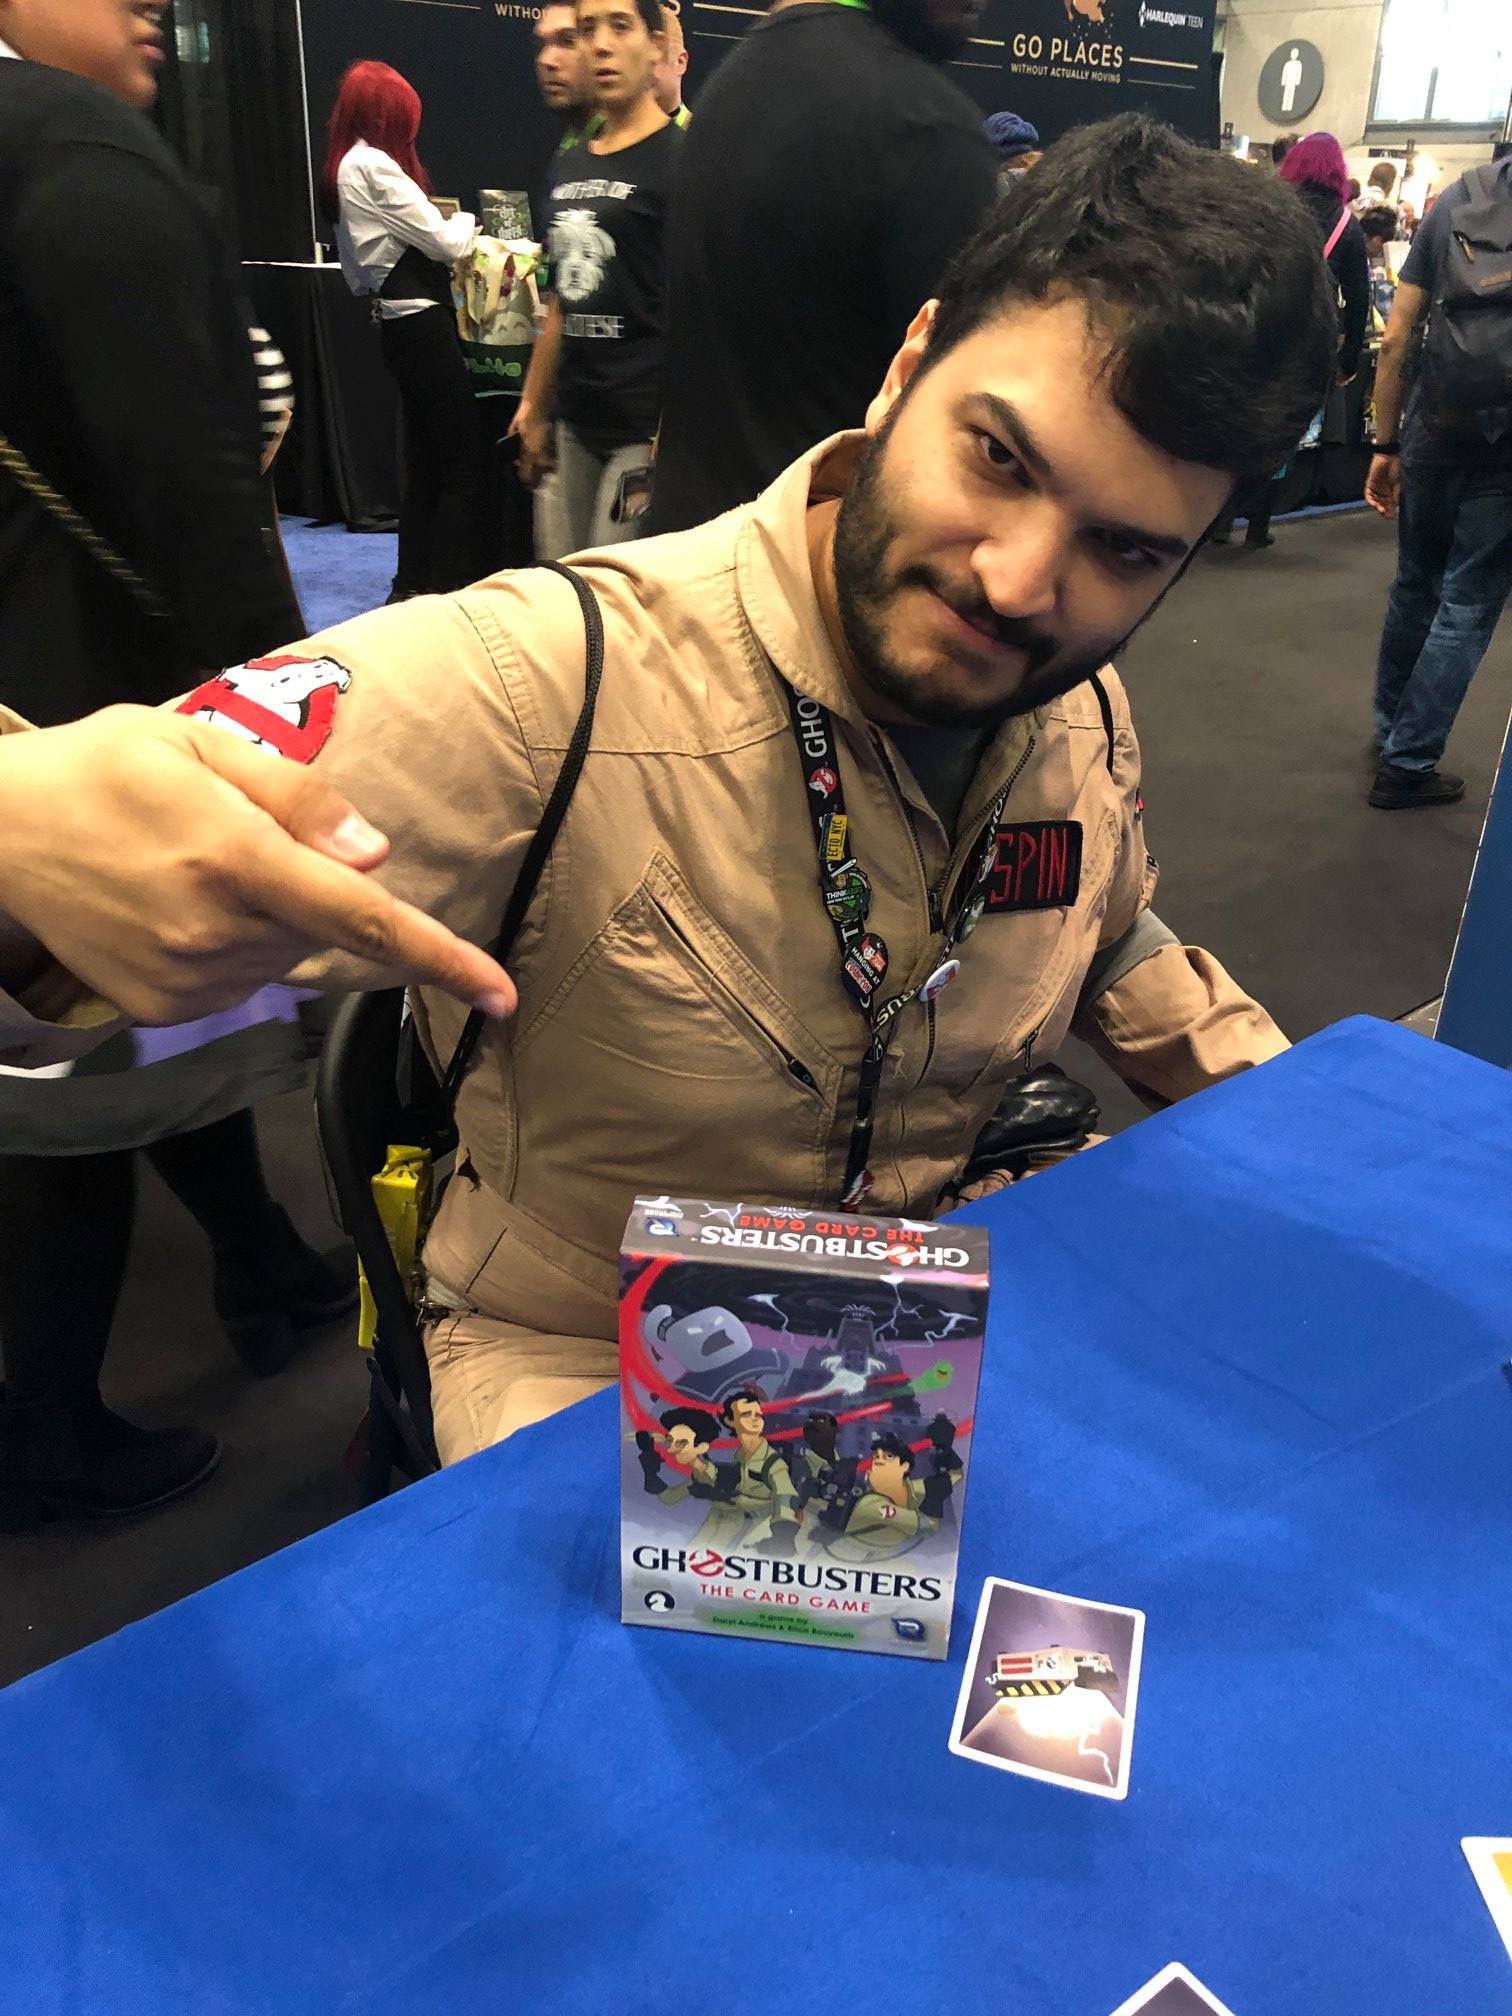 Check out Ghostbusters: The Card Game!